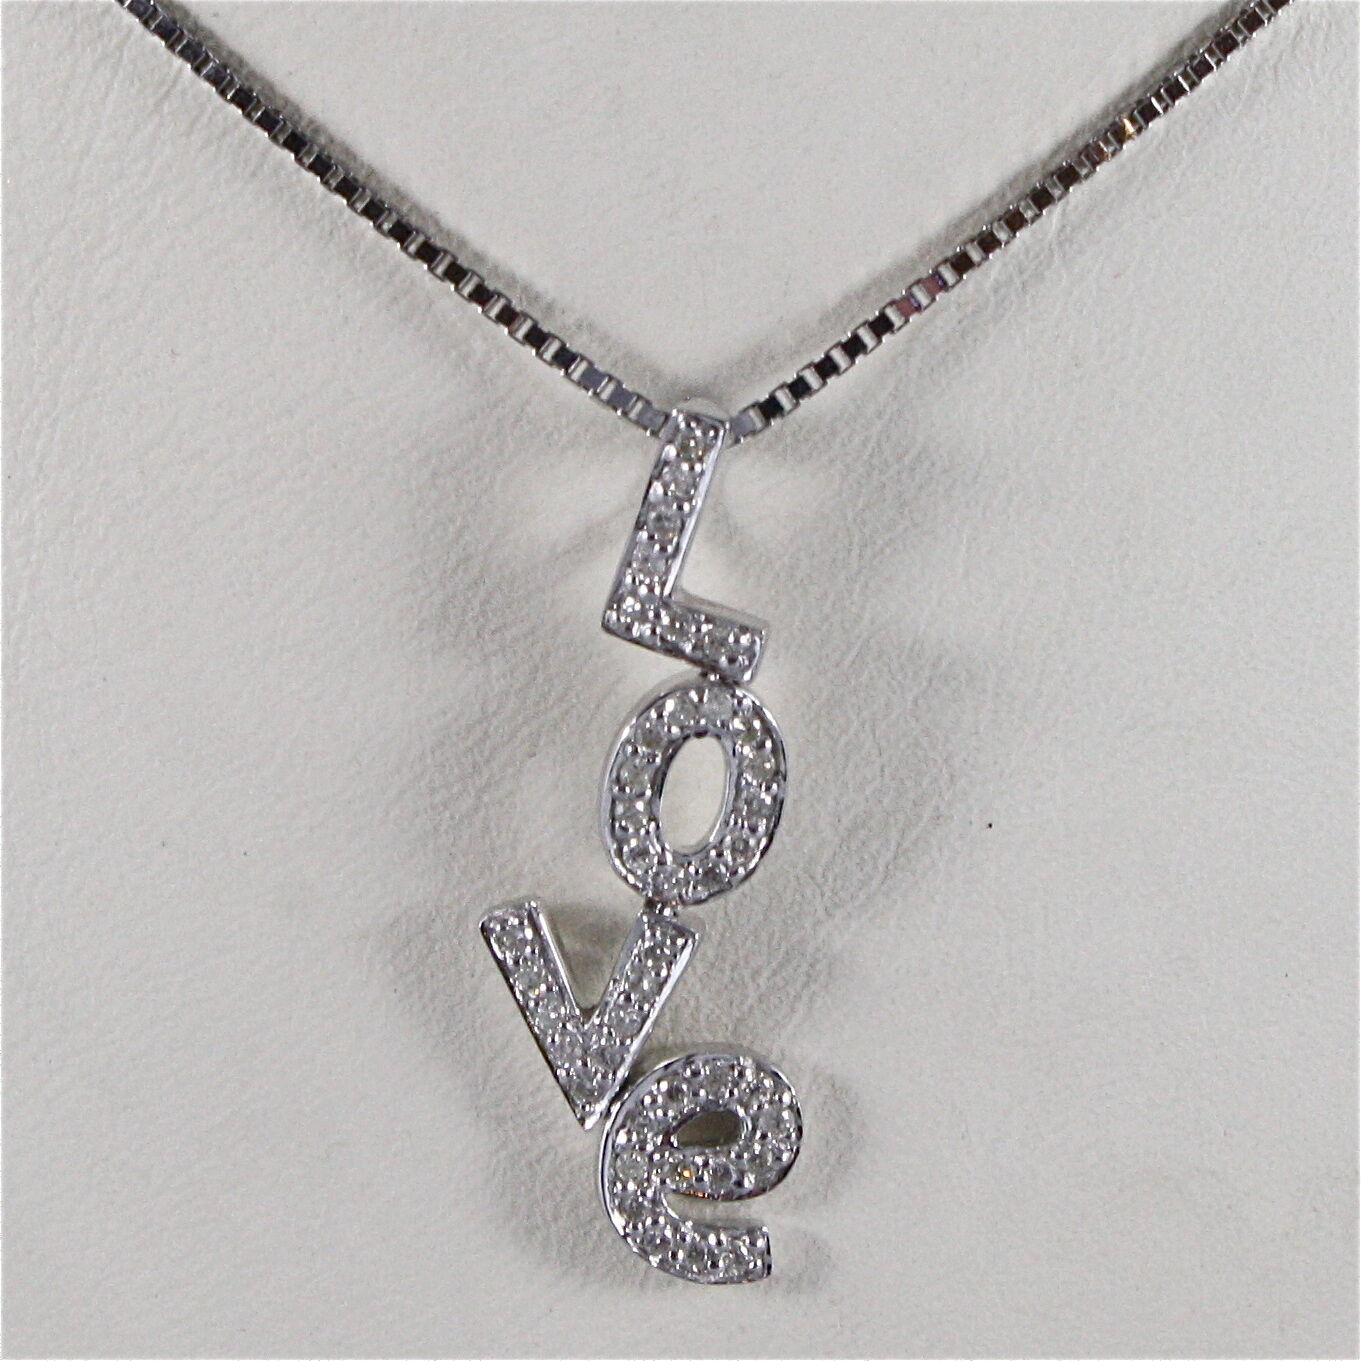 18K WHITE GOLD NECKLACE, LOVE PENDANT, DIAMONDS CT 0.20, MADE IN ITALY